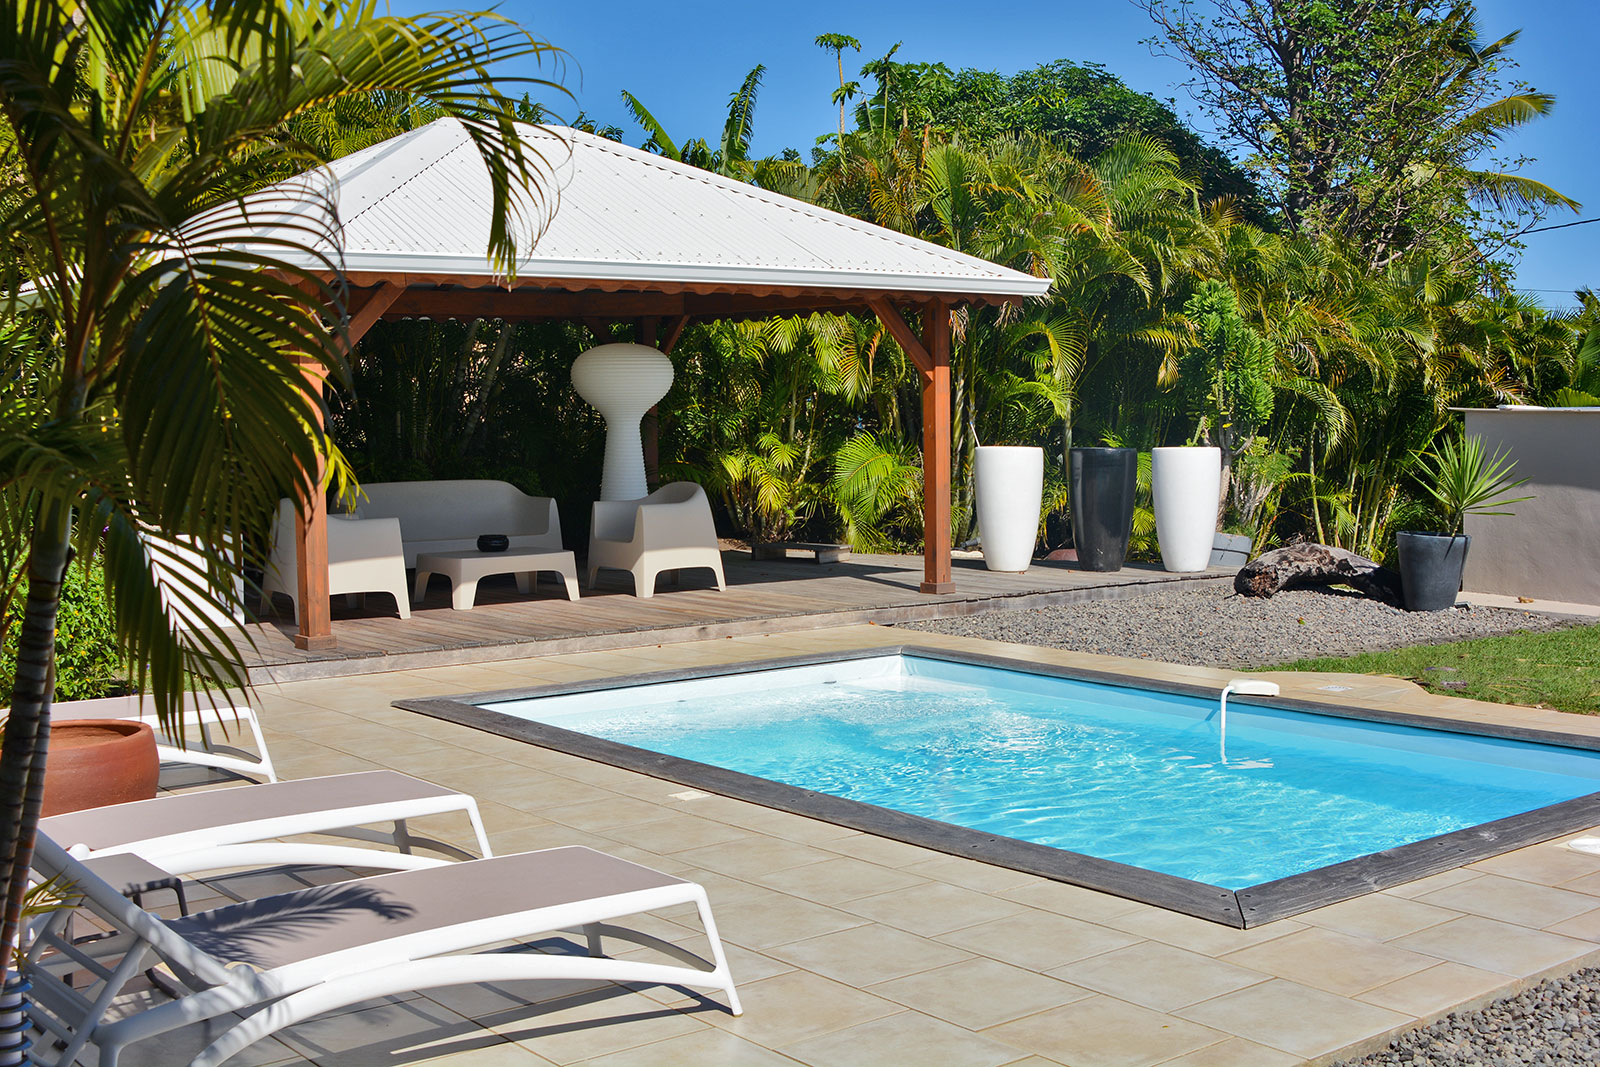 Location villa martinique piscine le vauclin